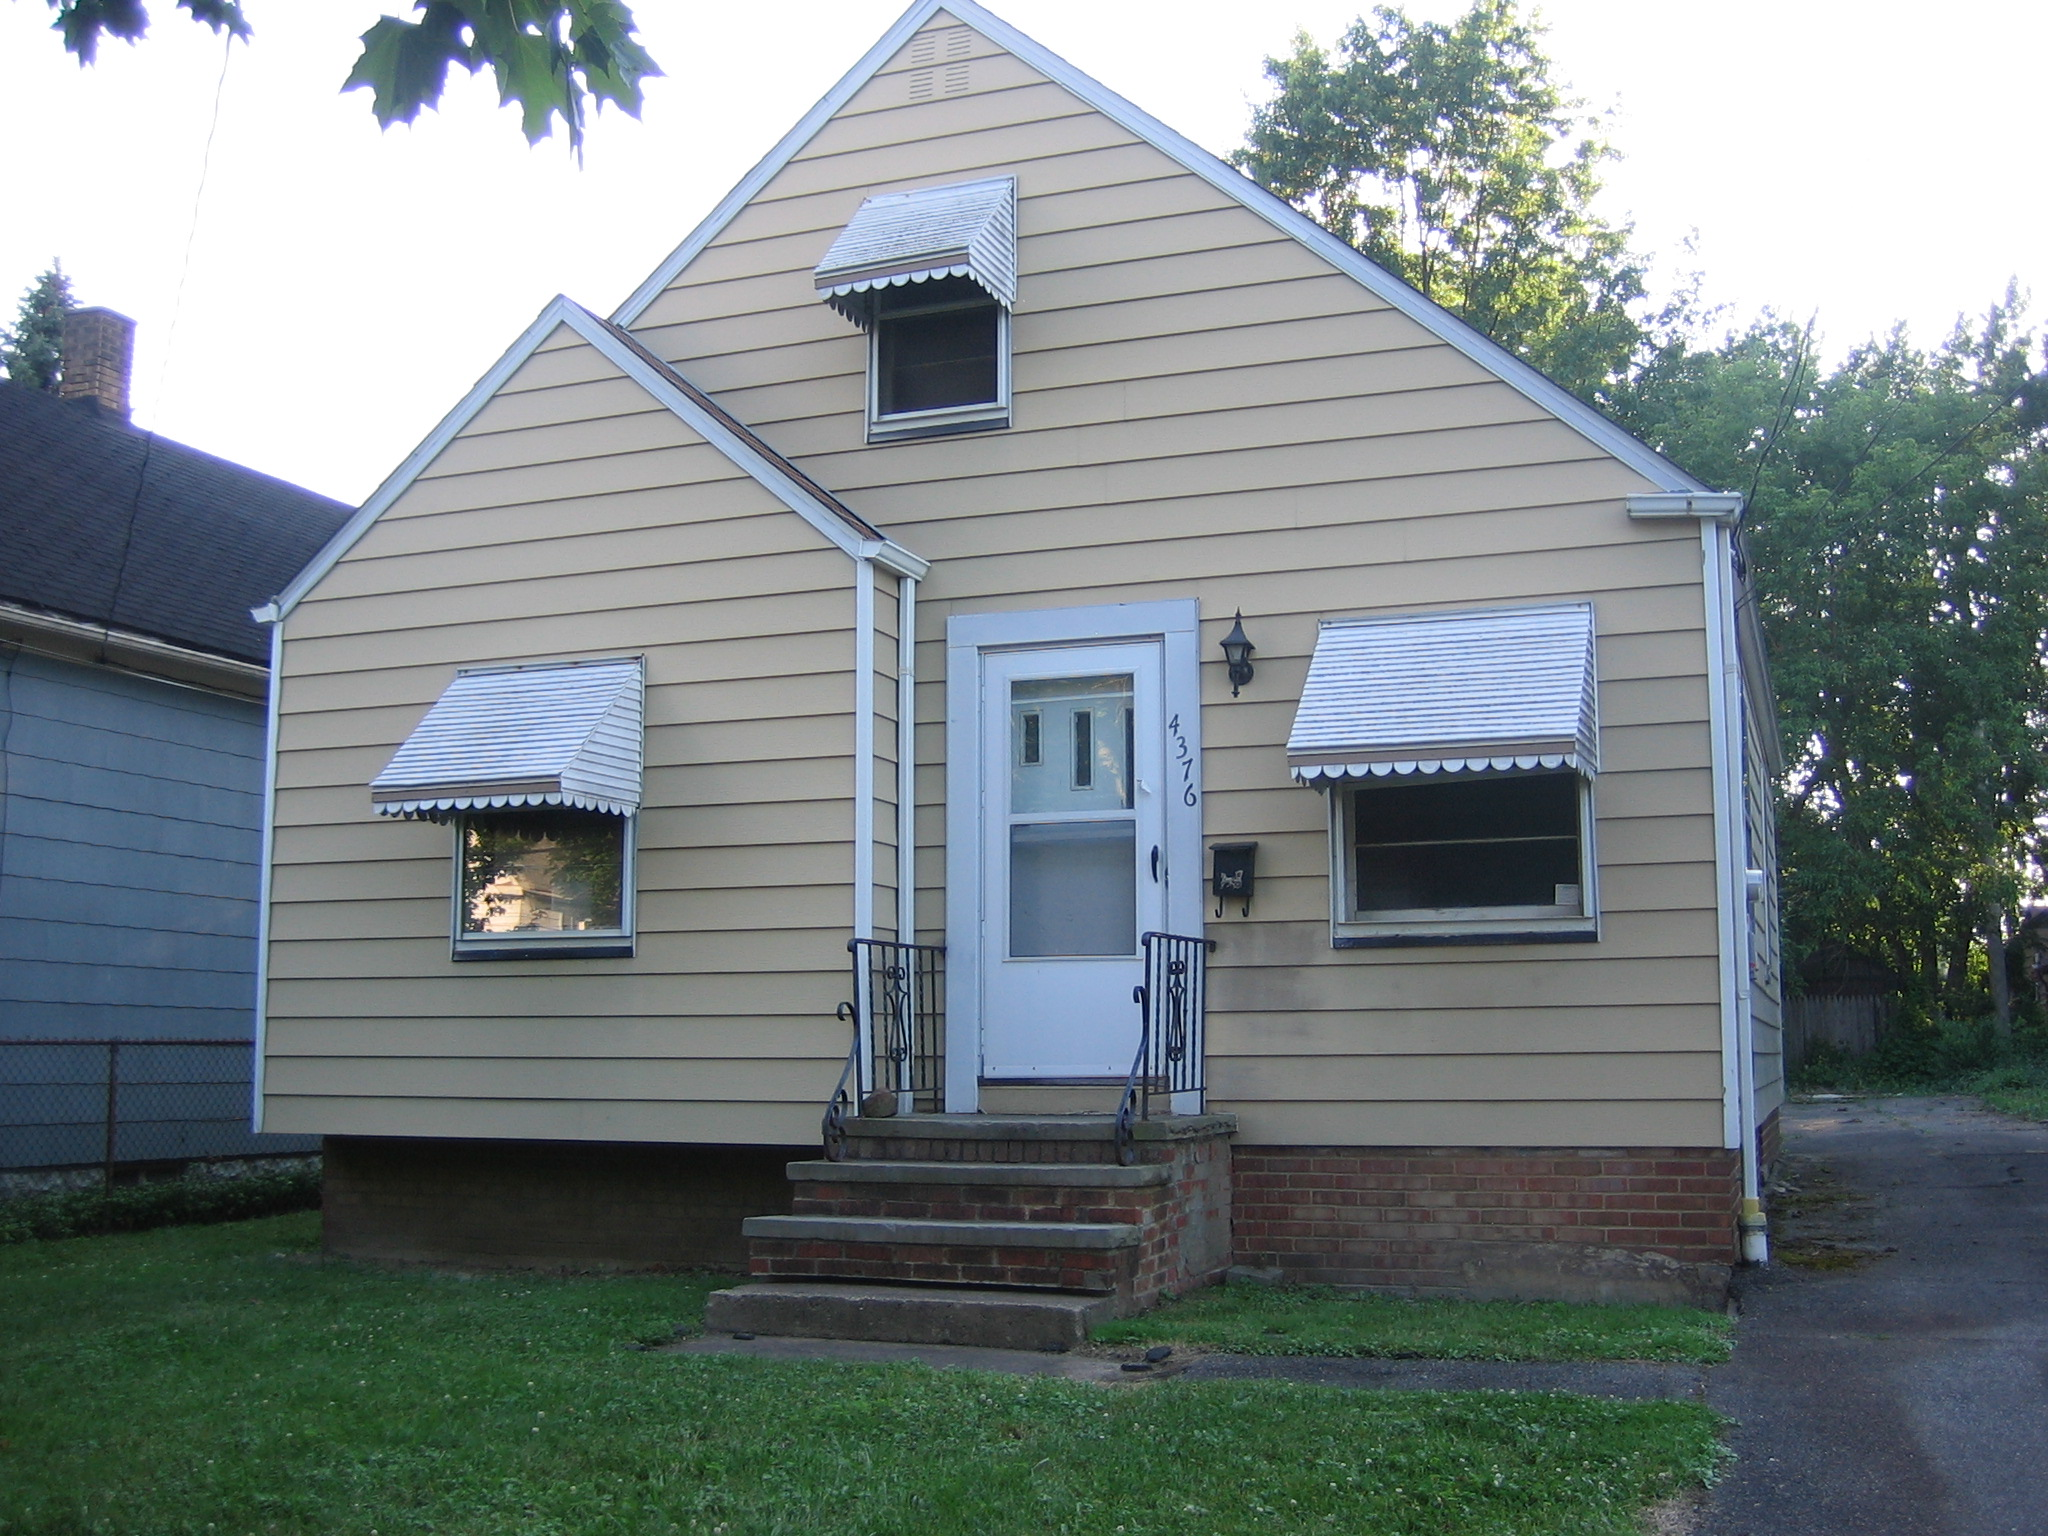 4376 W. 52nd St Cleveland, OH 44102